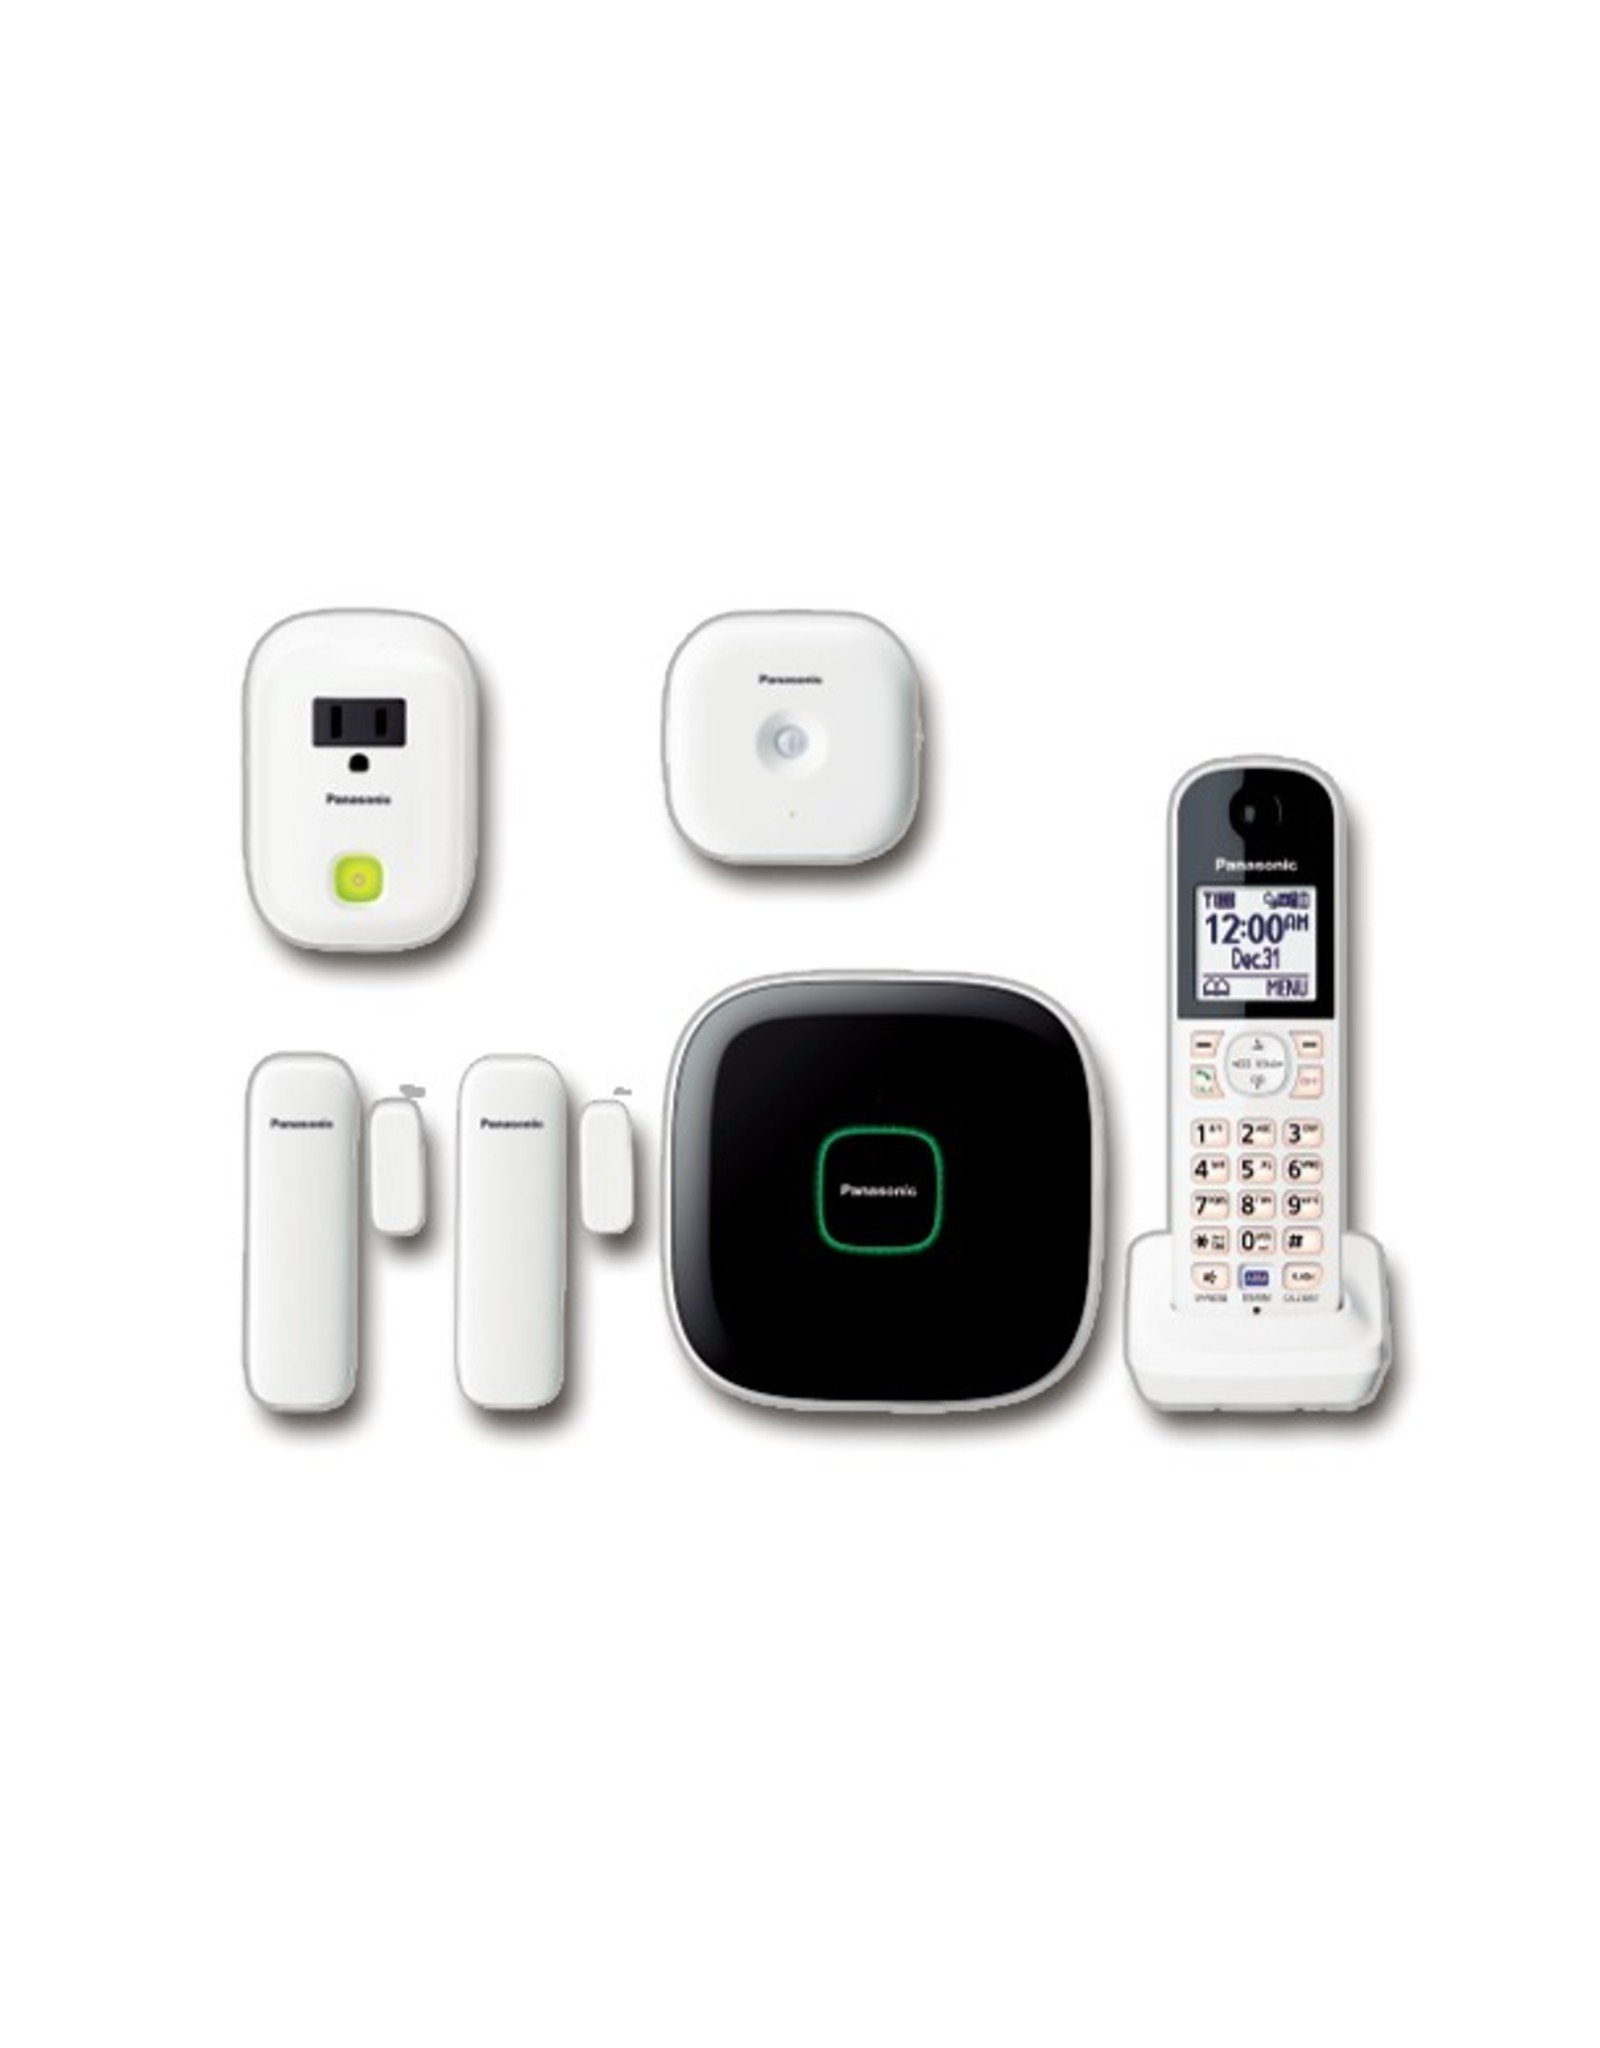 Panasonic Panasonic-Security Home Monitoring & Control Kit